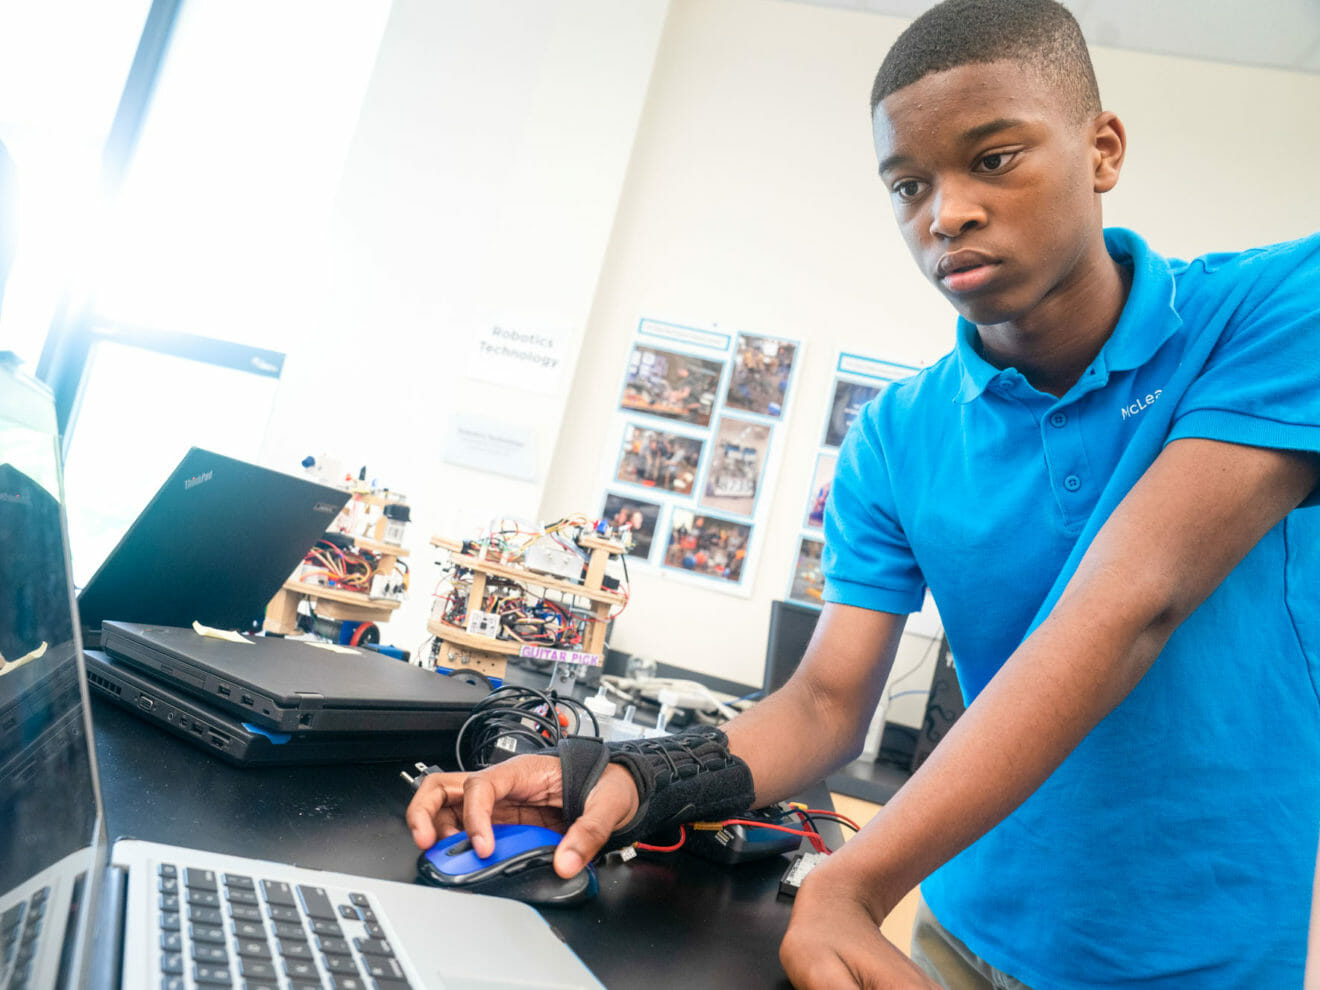 Student uses laptop during robotics project